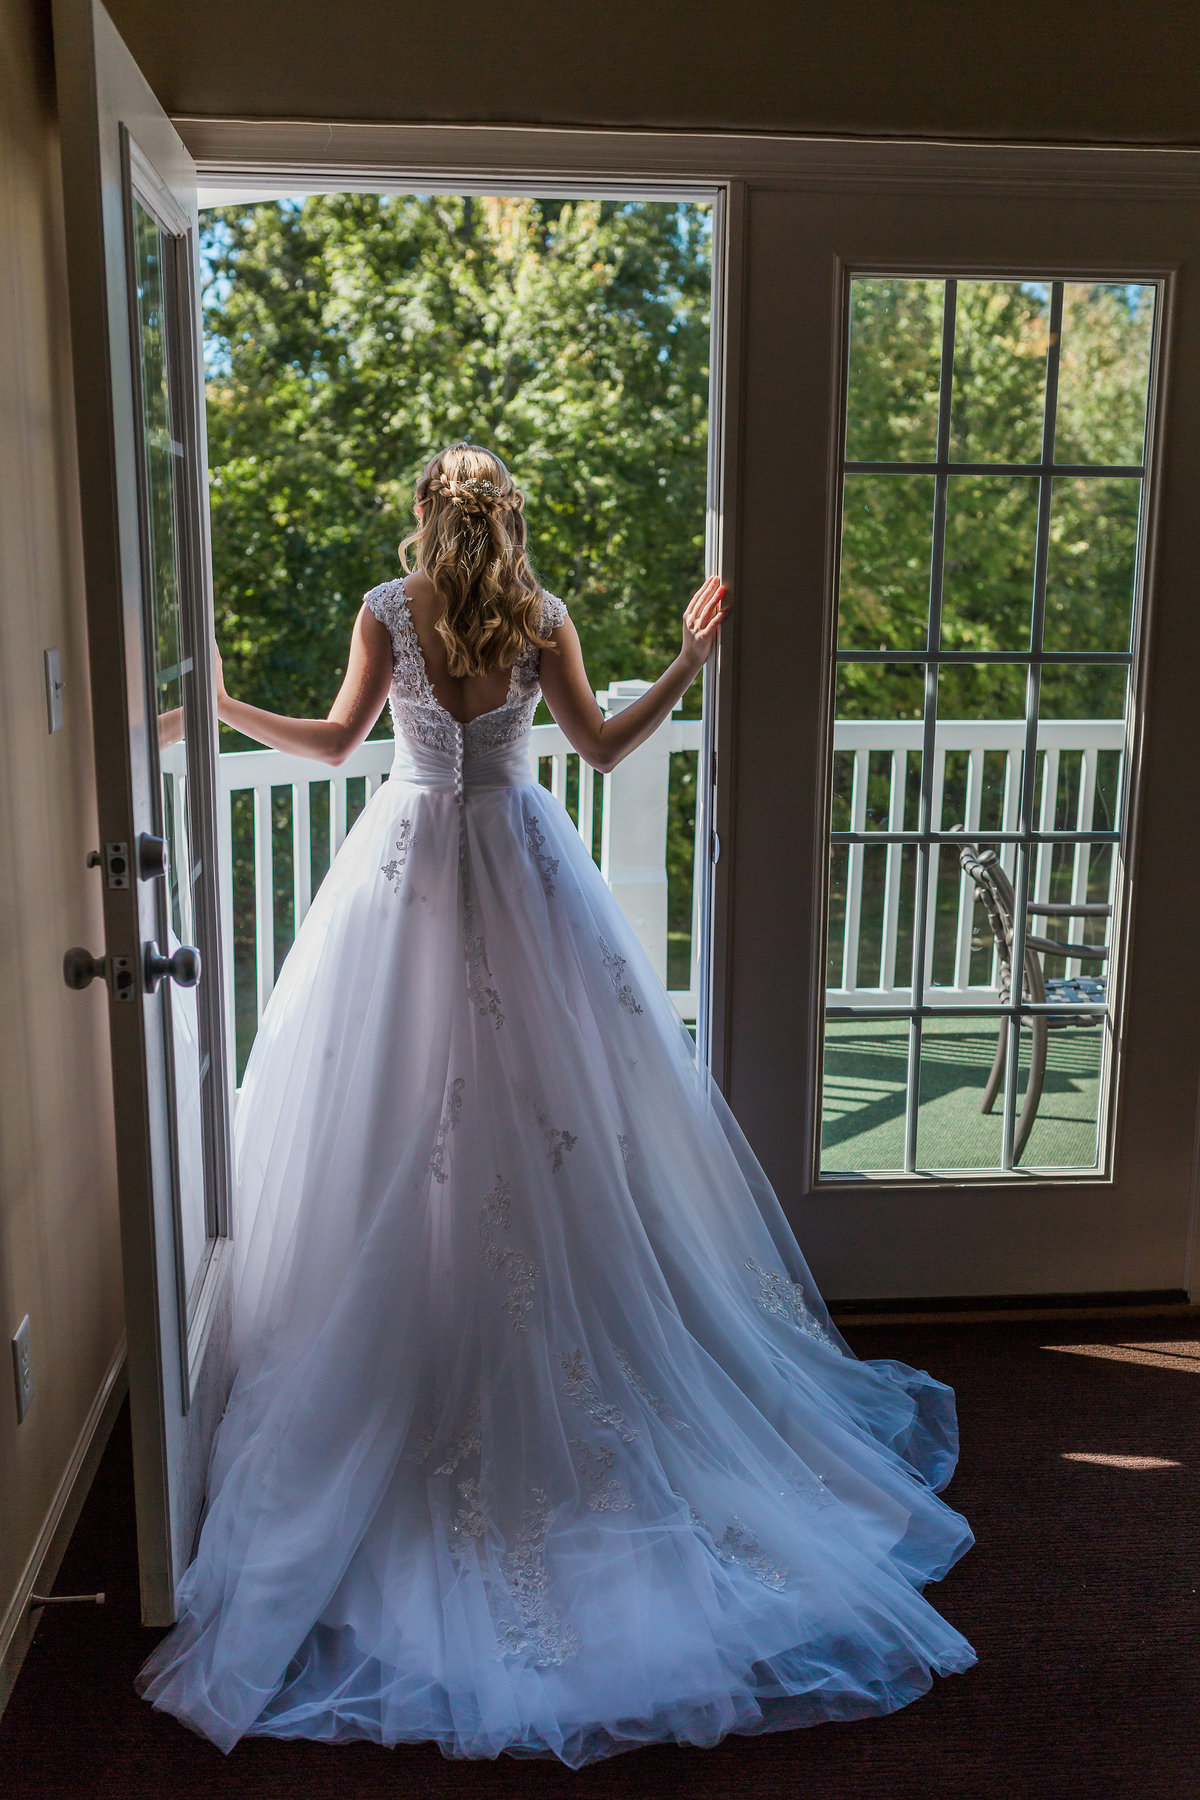 A bride poses in a doorway near Williamsburg